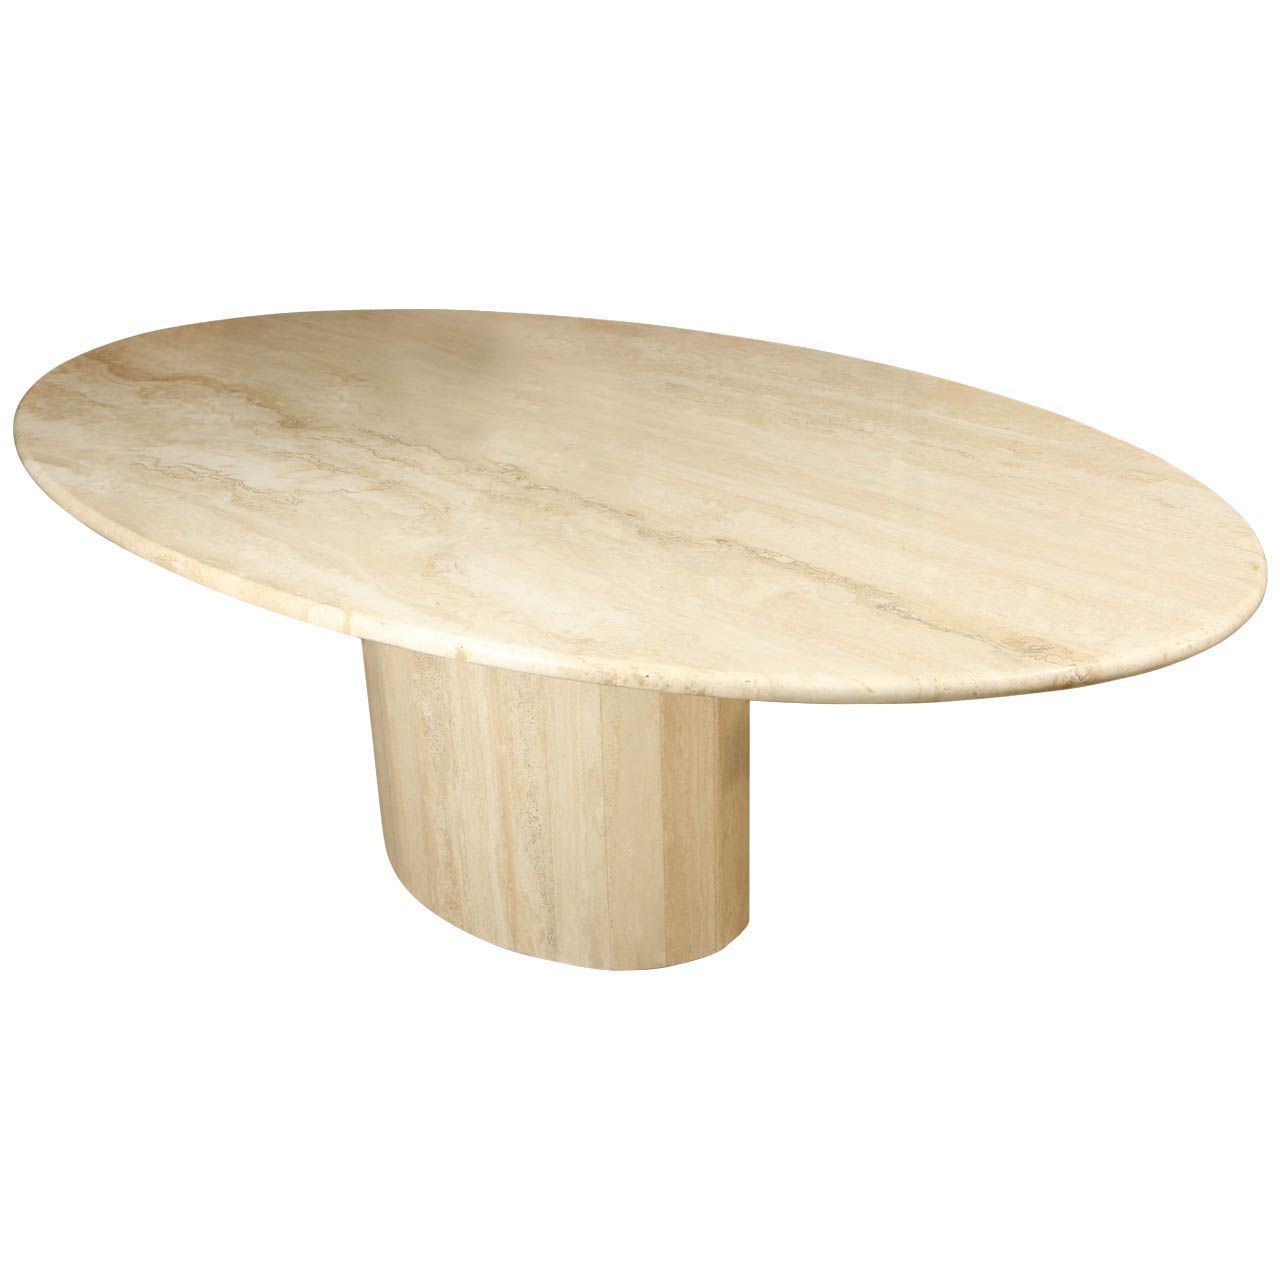 Travertine Dining Room Table Travertine Dining Room Tables And Modern Dining Room Tables On